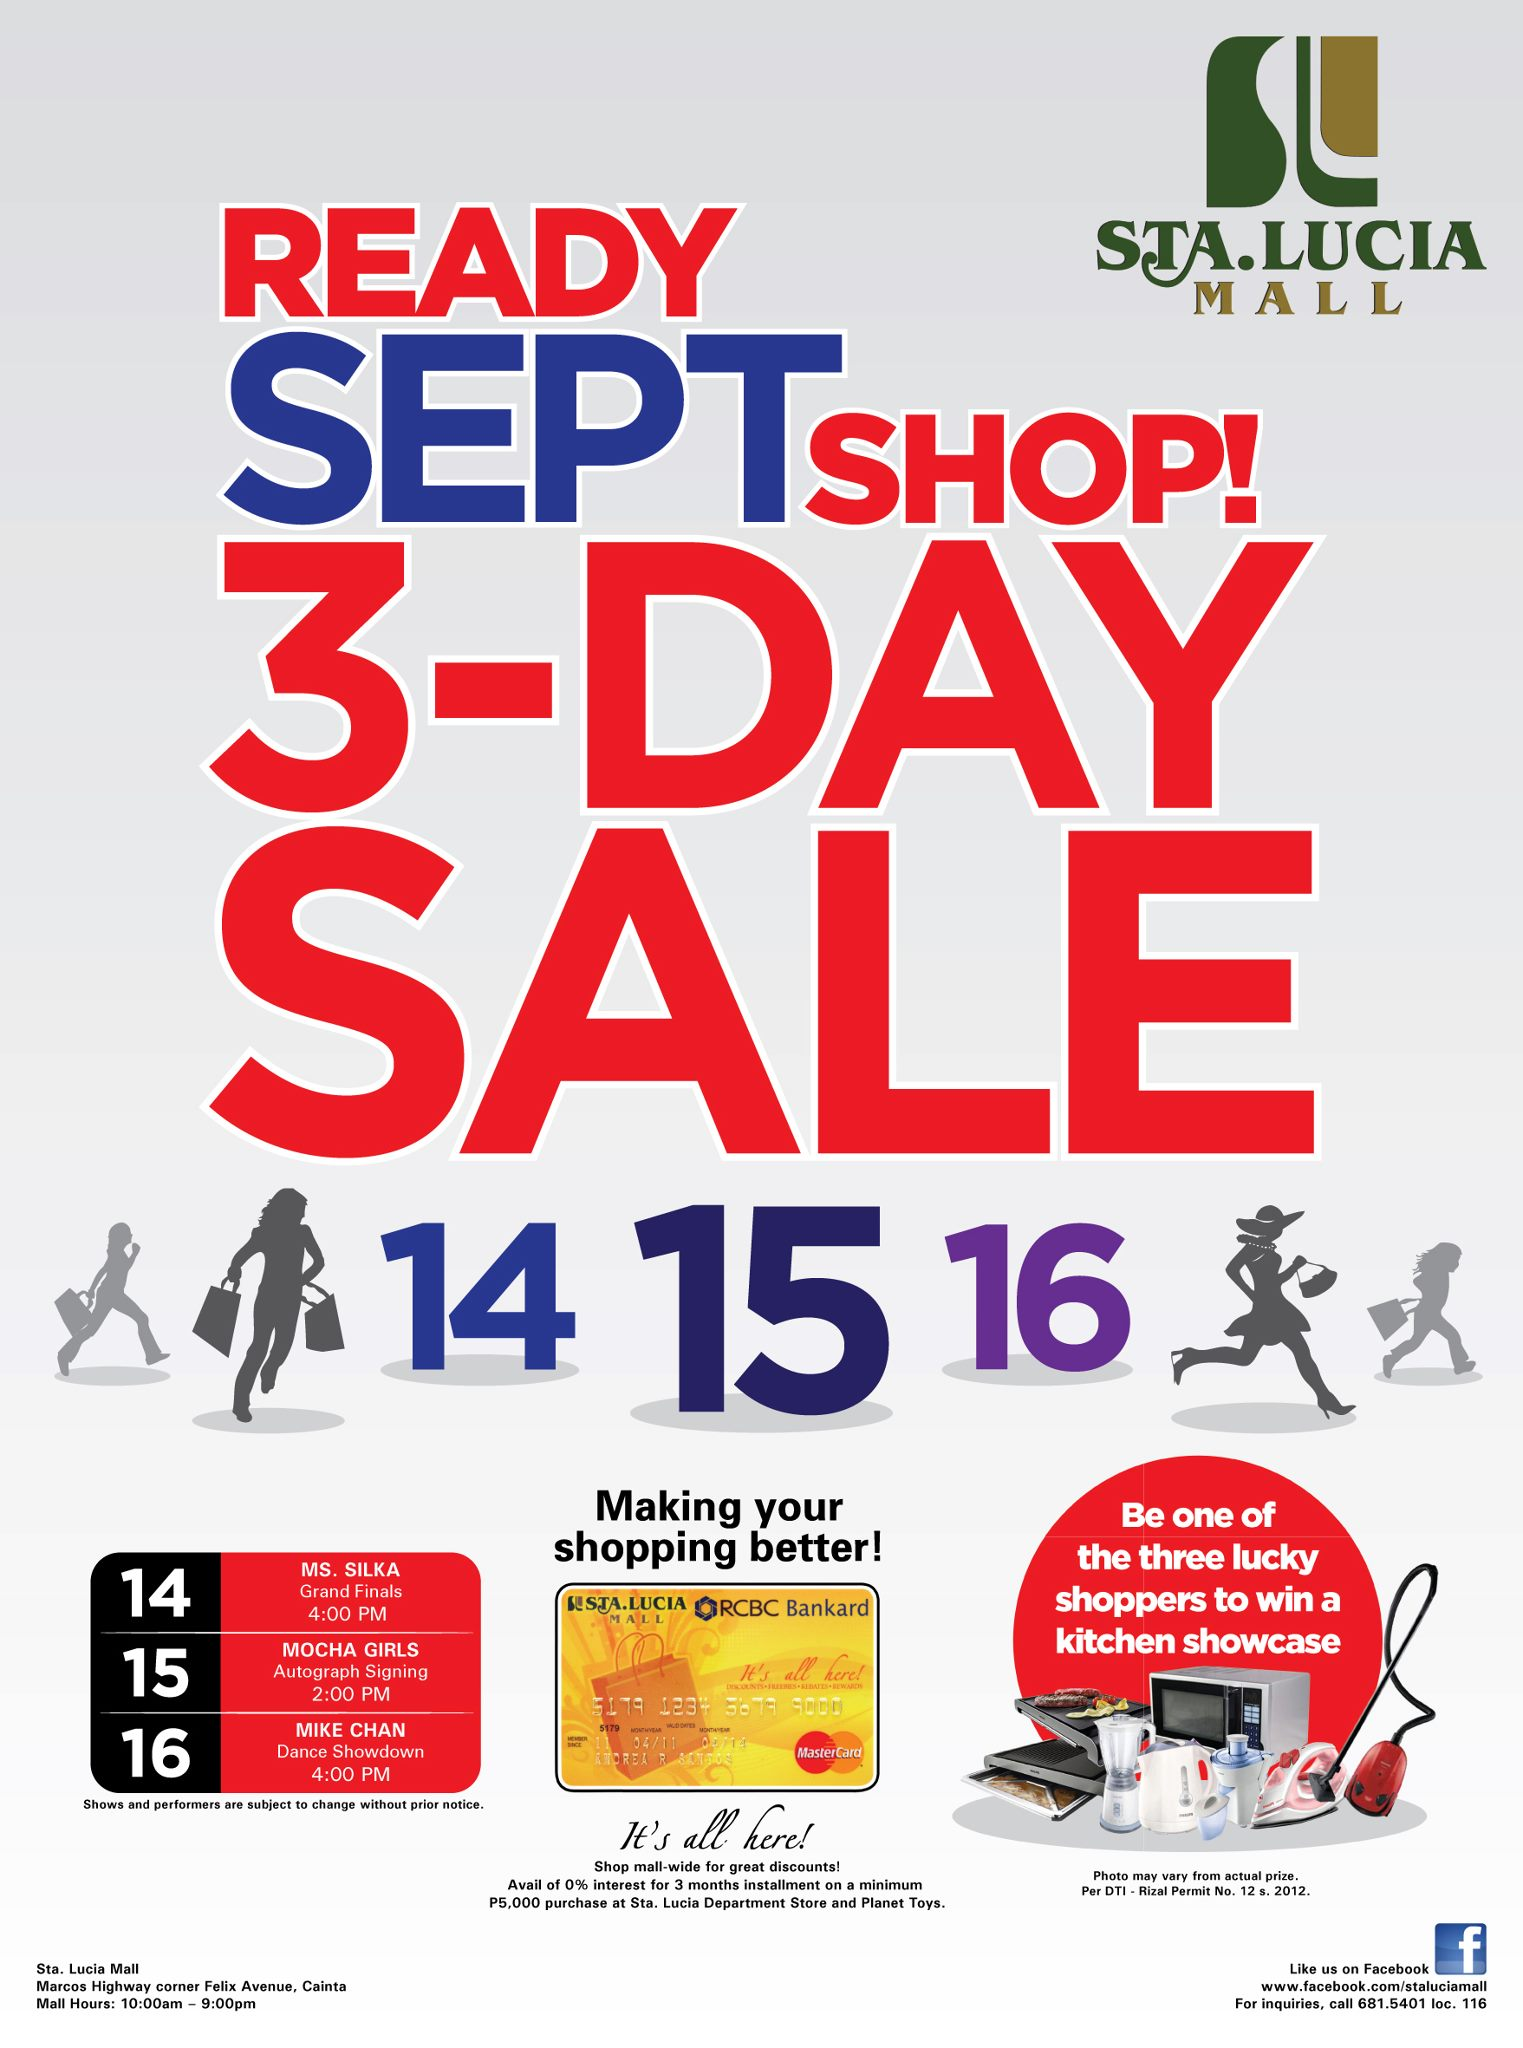 Sta. Lucia 3-Day Sale September 2012